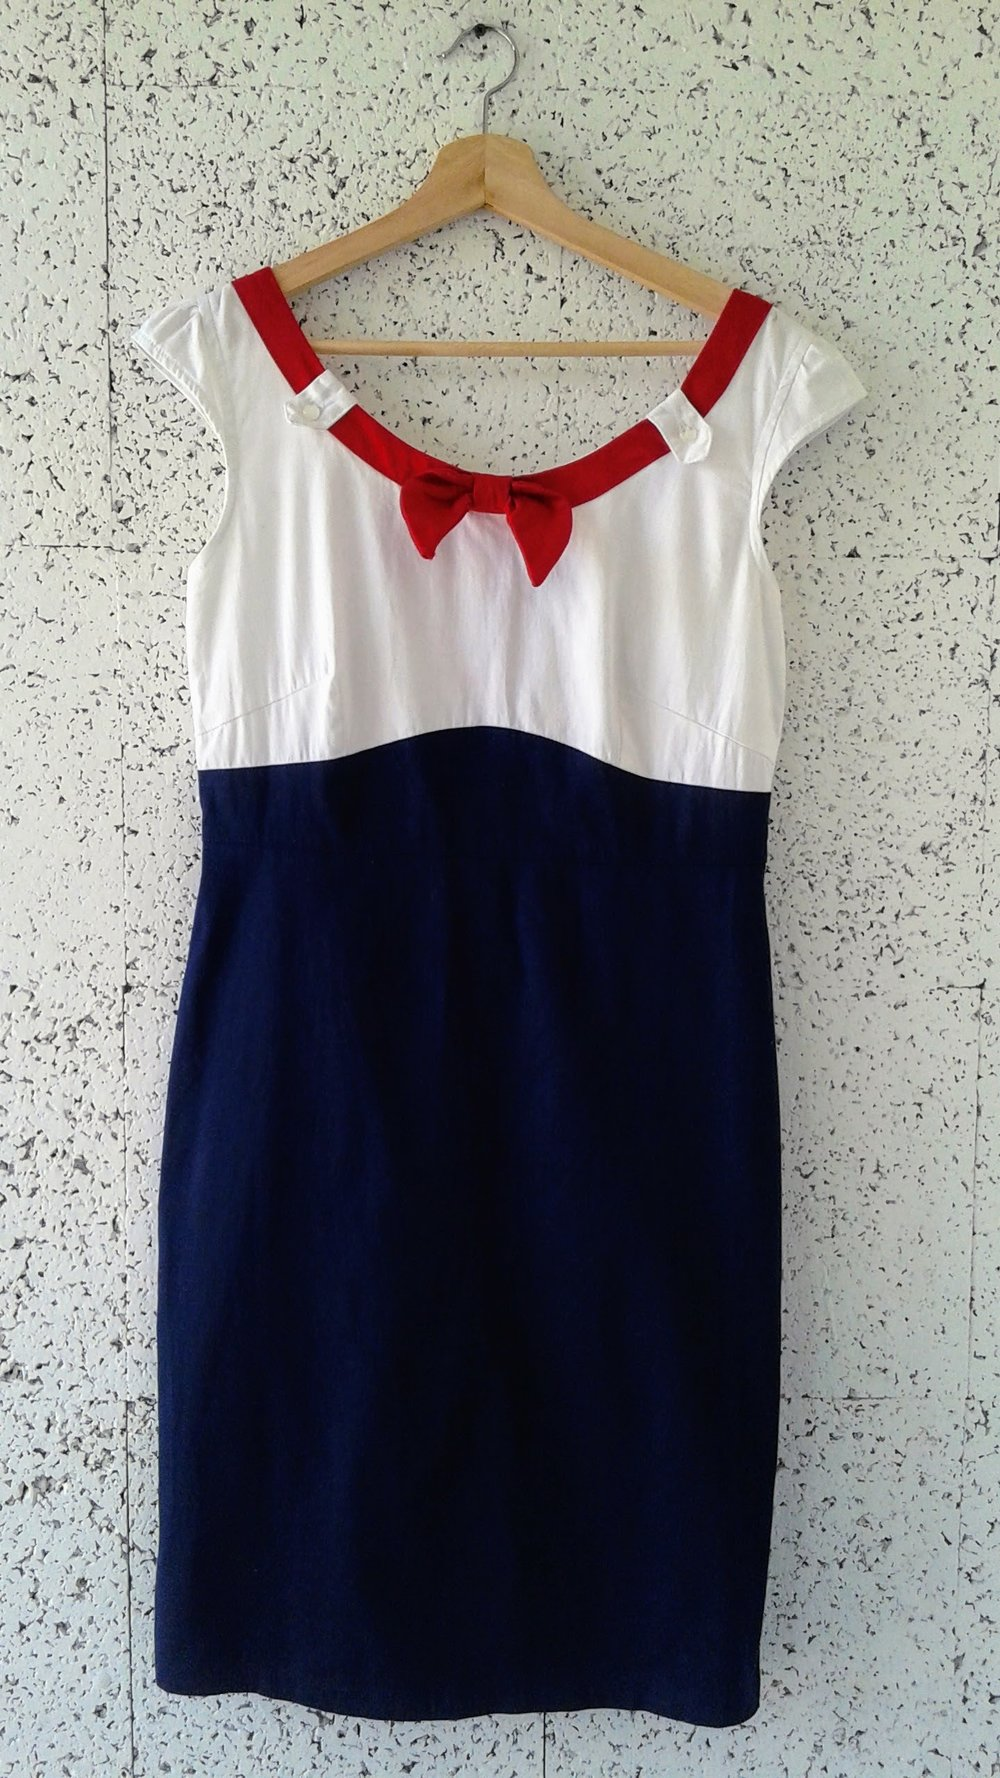 Steady dress; Size L, $34